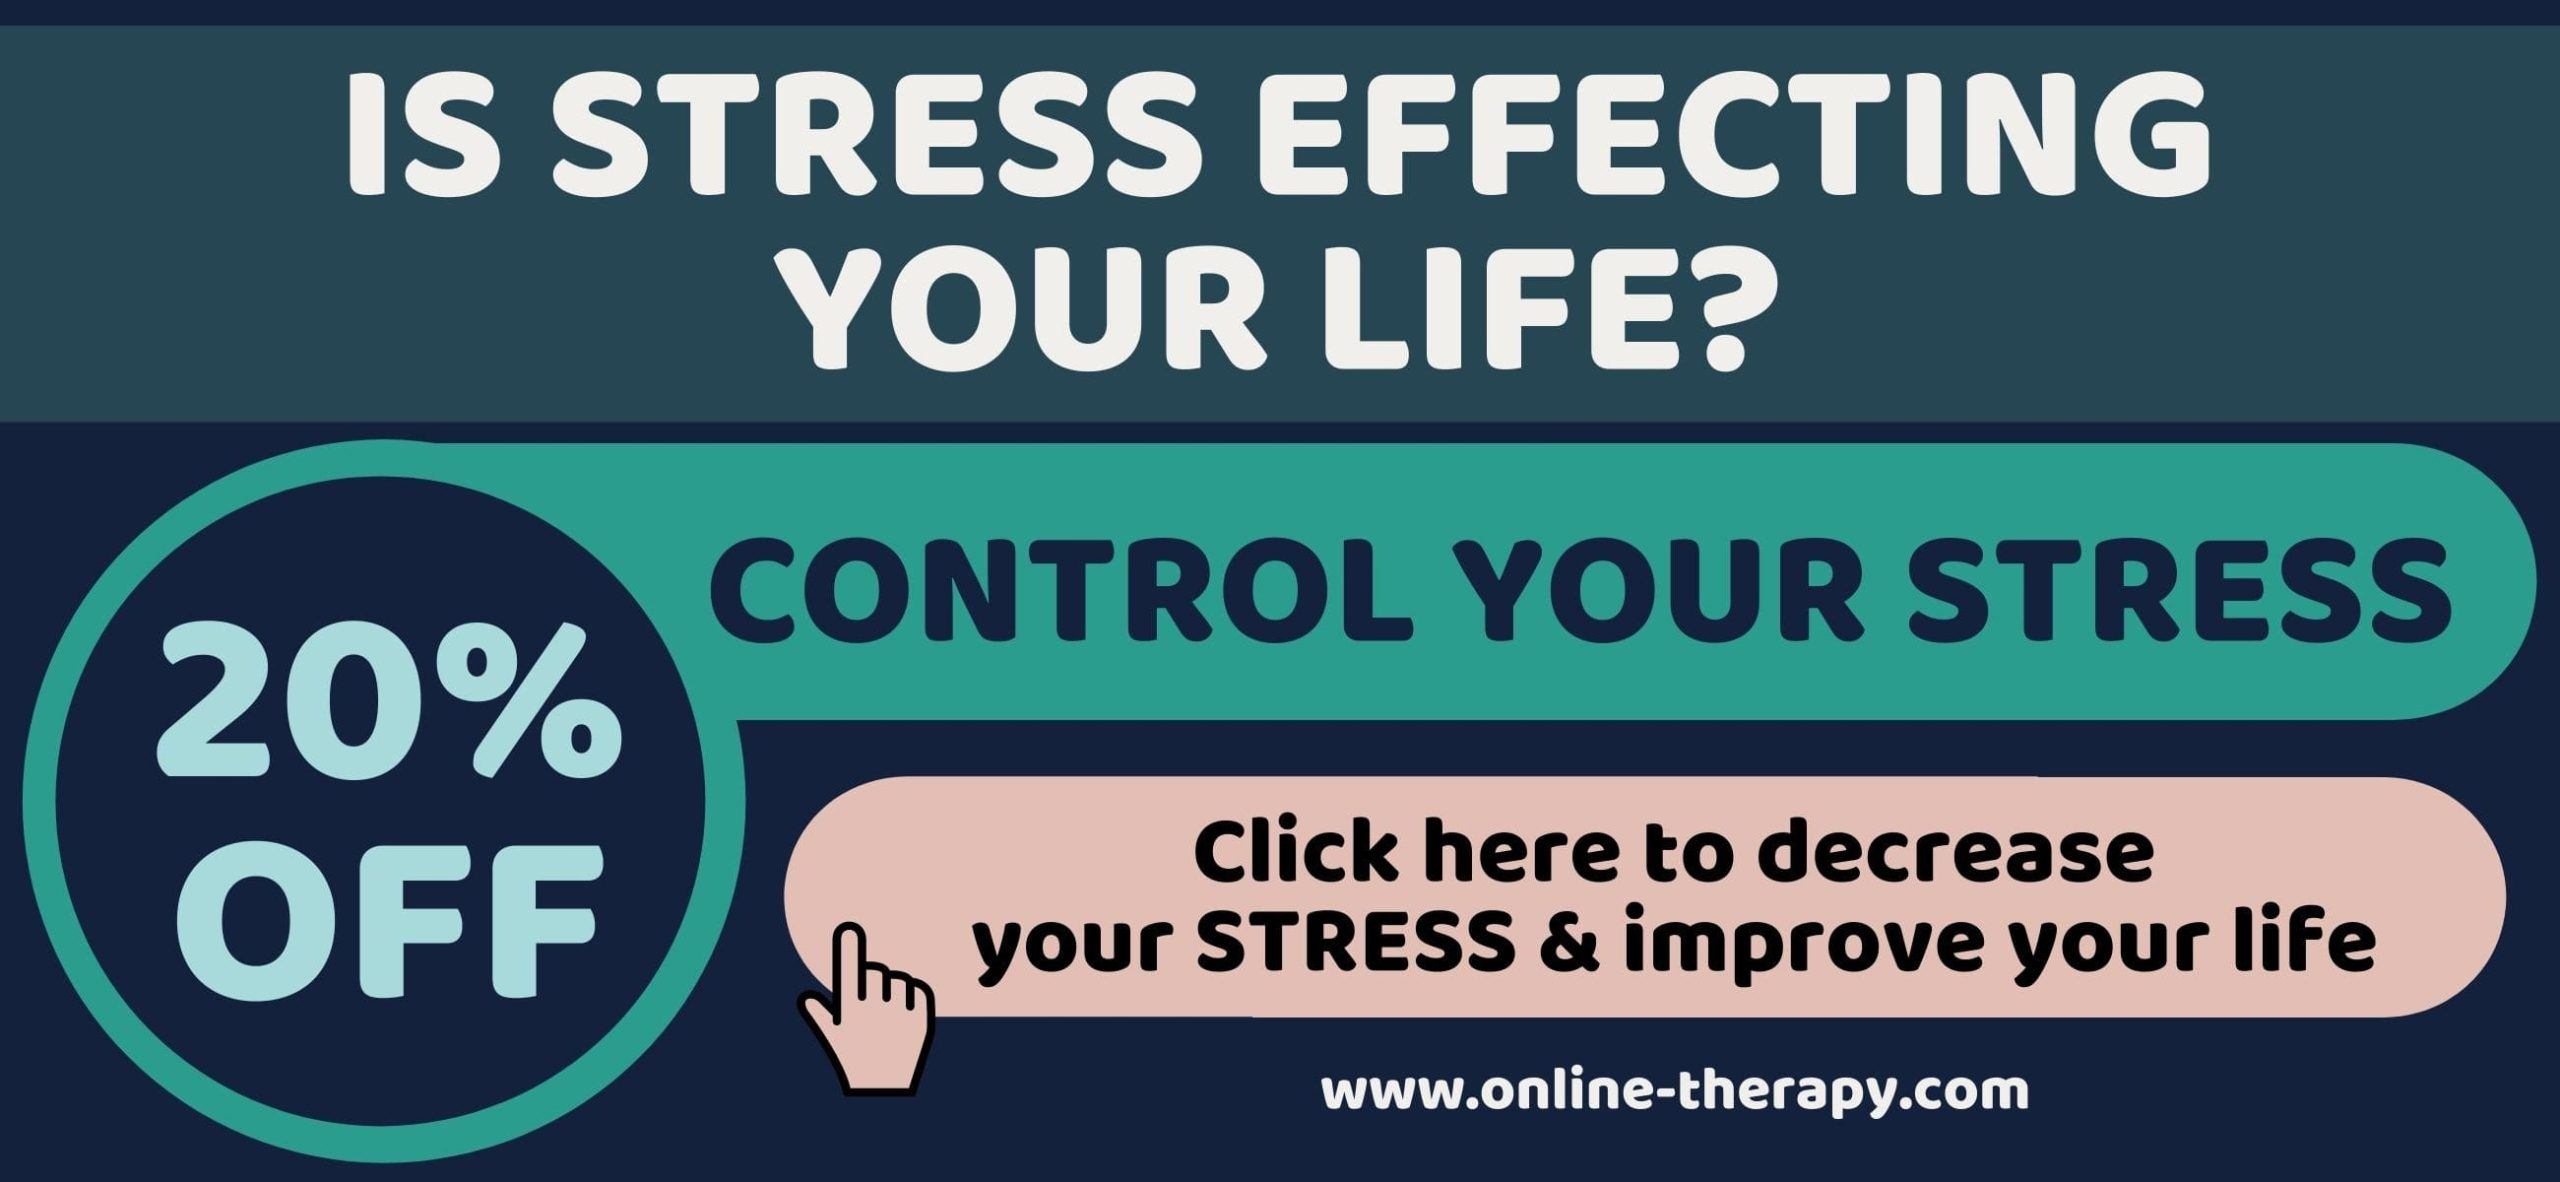 IS STRESS EFFECTING YOUR LIFE_ WTGM-min